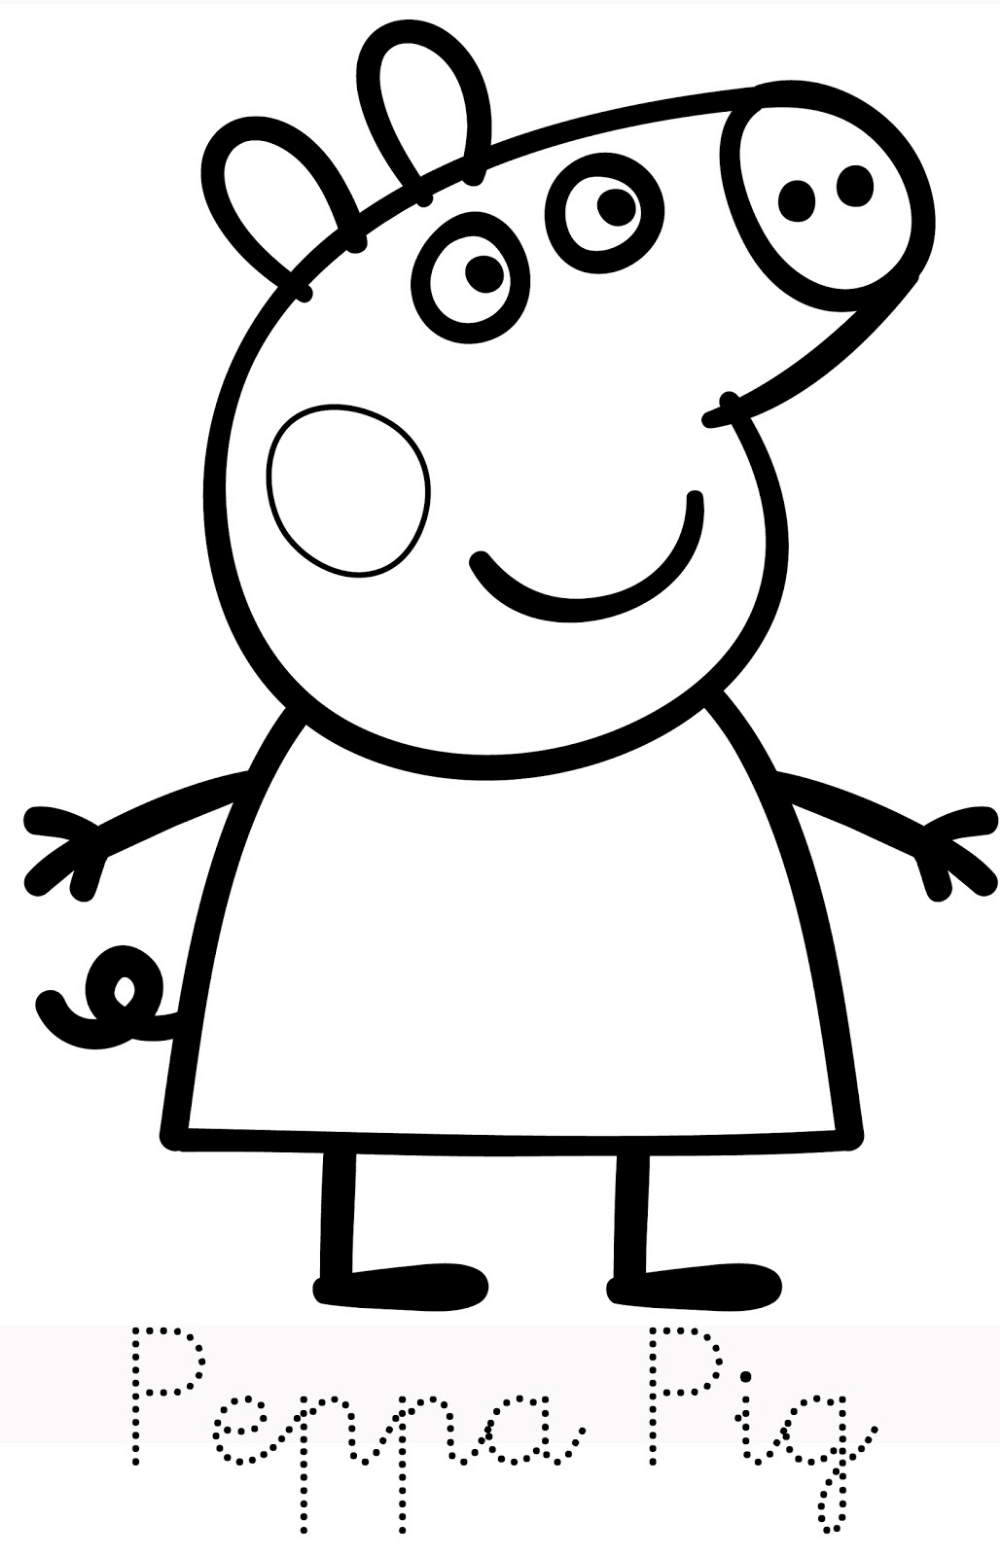 Peppa Pig Coloring Pages Best Coloring Pages For Kids Peppa Pig Colouring Peppa Pig Coloring Pages Peppa Pig Pictures